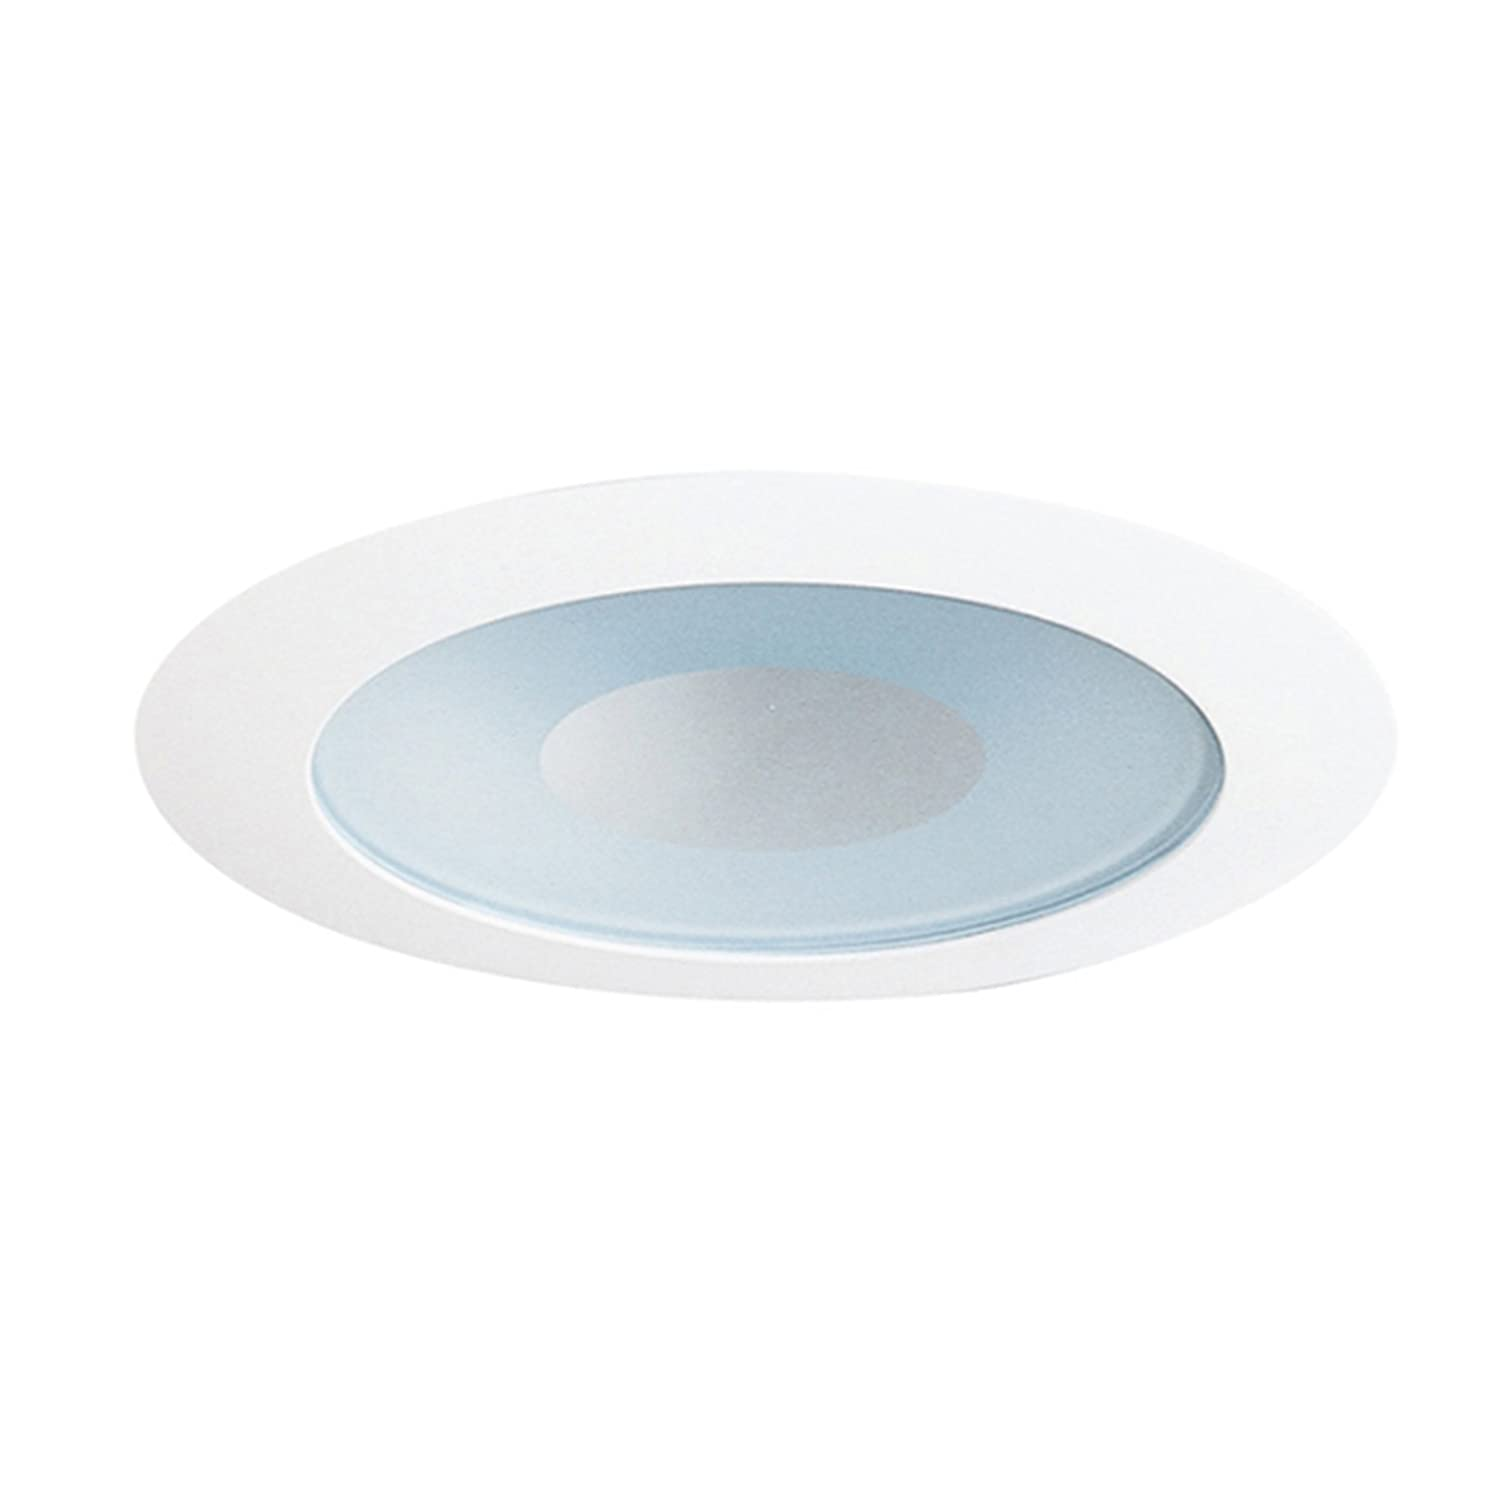 Recessed lighting trim sizes : Recessed light trim mpow inches open baffle